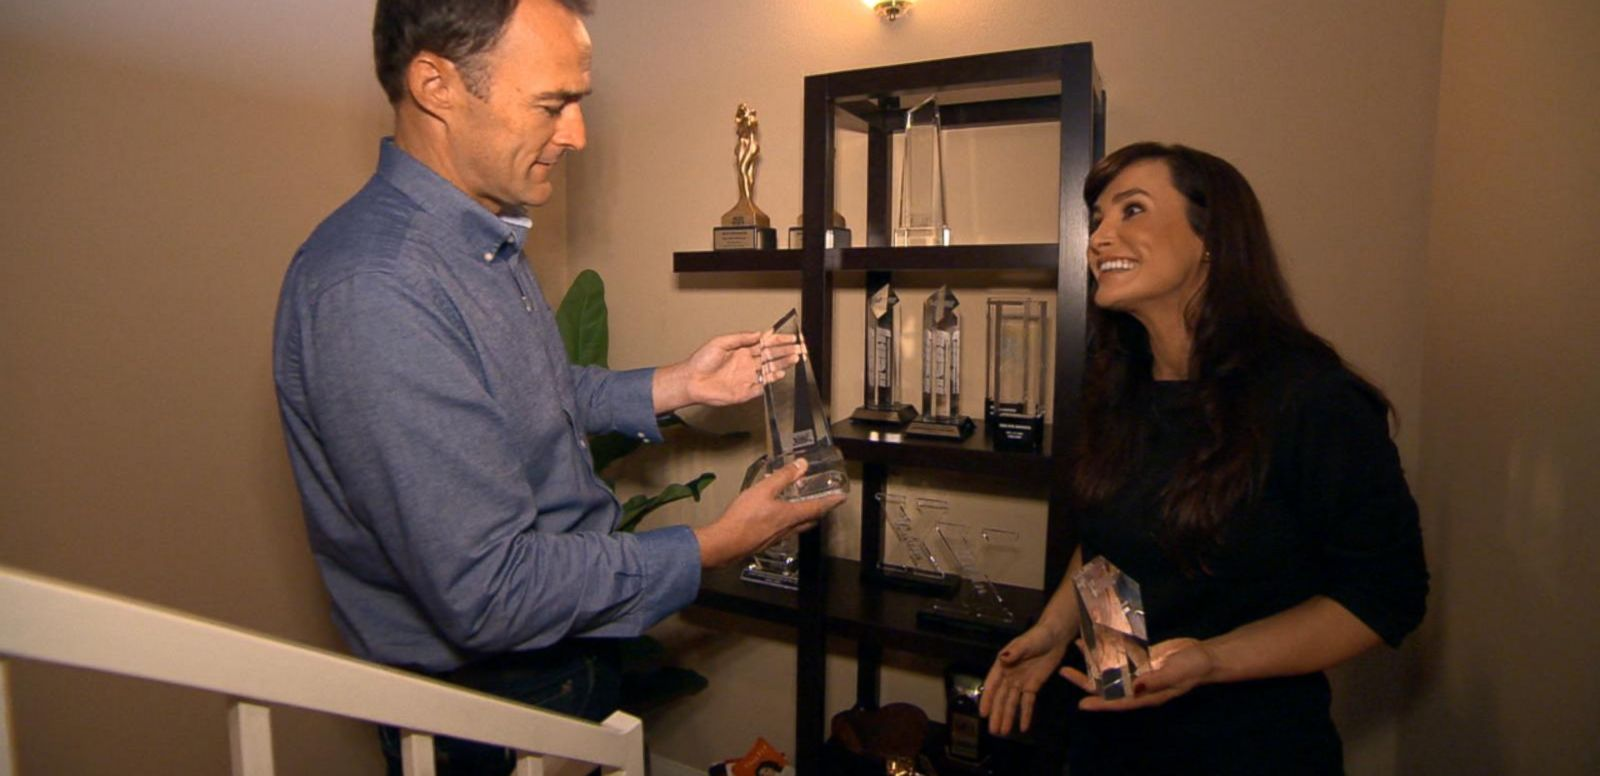 VIDEO: Inside Ex-Porn Star, Turned-Fantasy Sports Radio Host Lisa Ann's Home